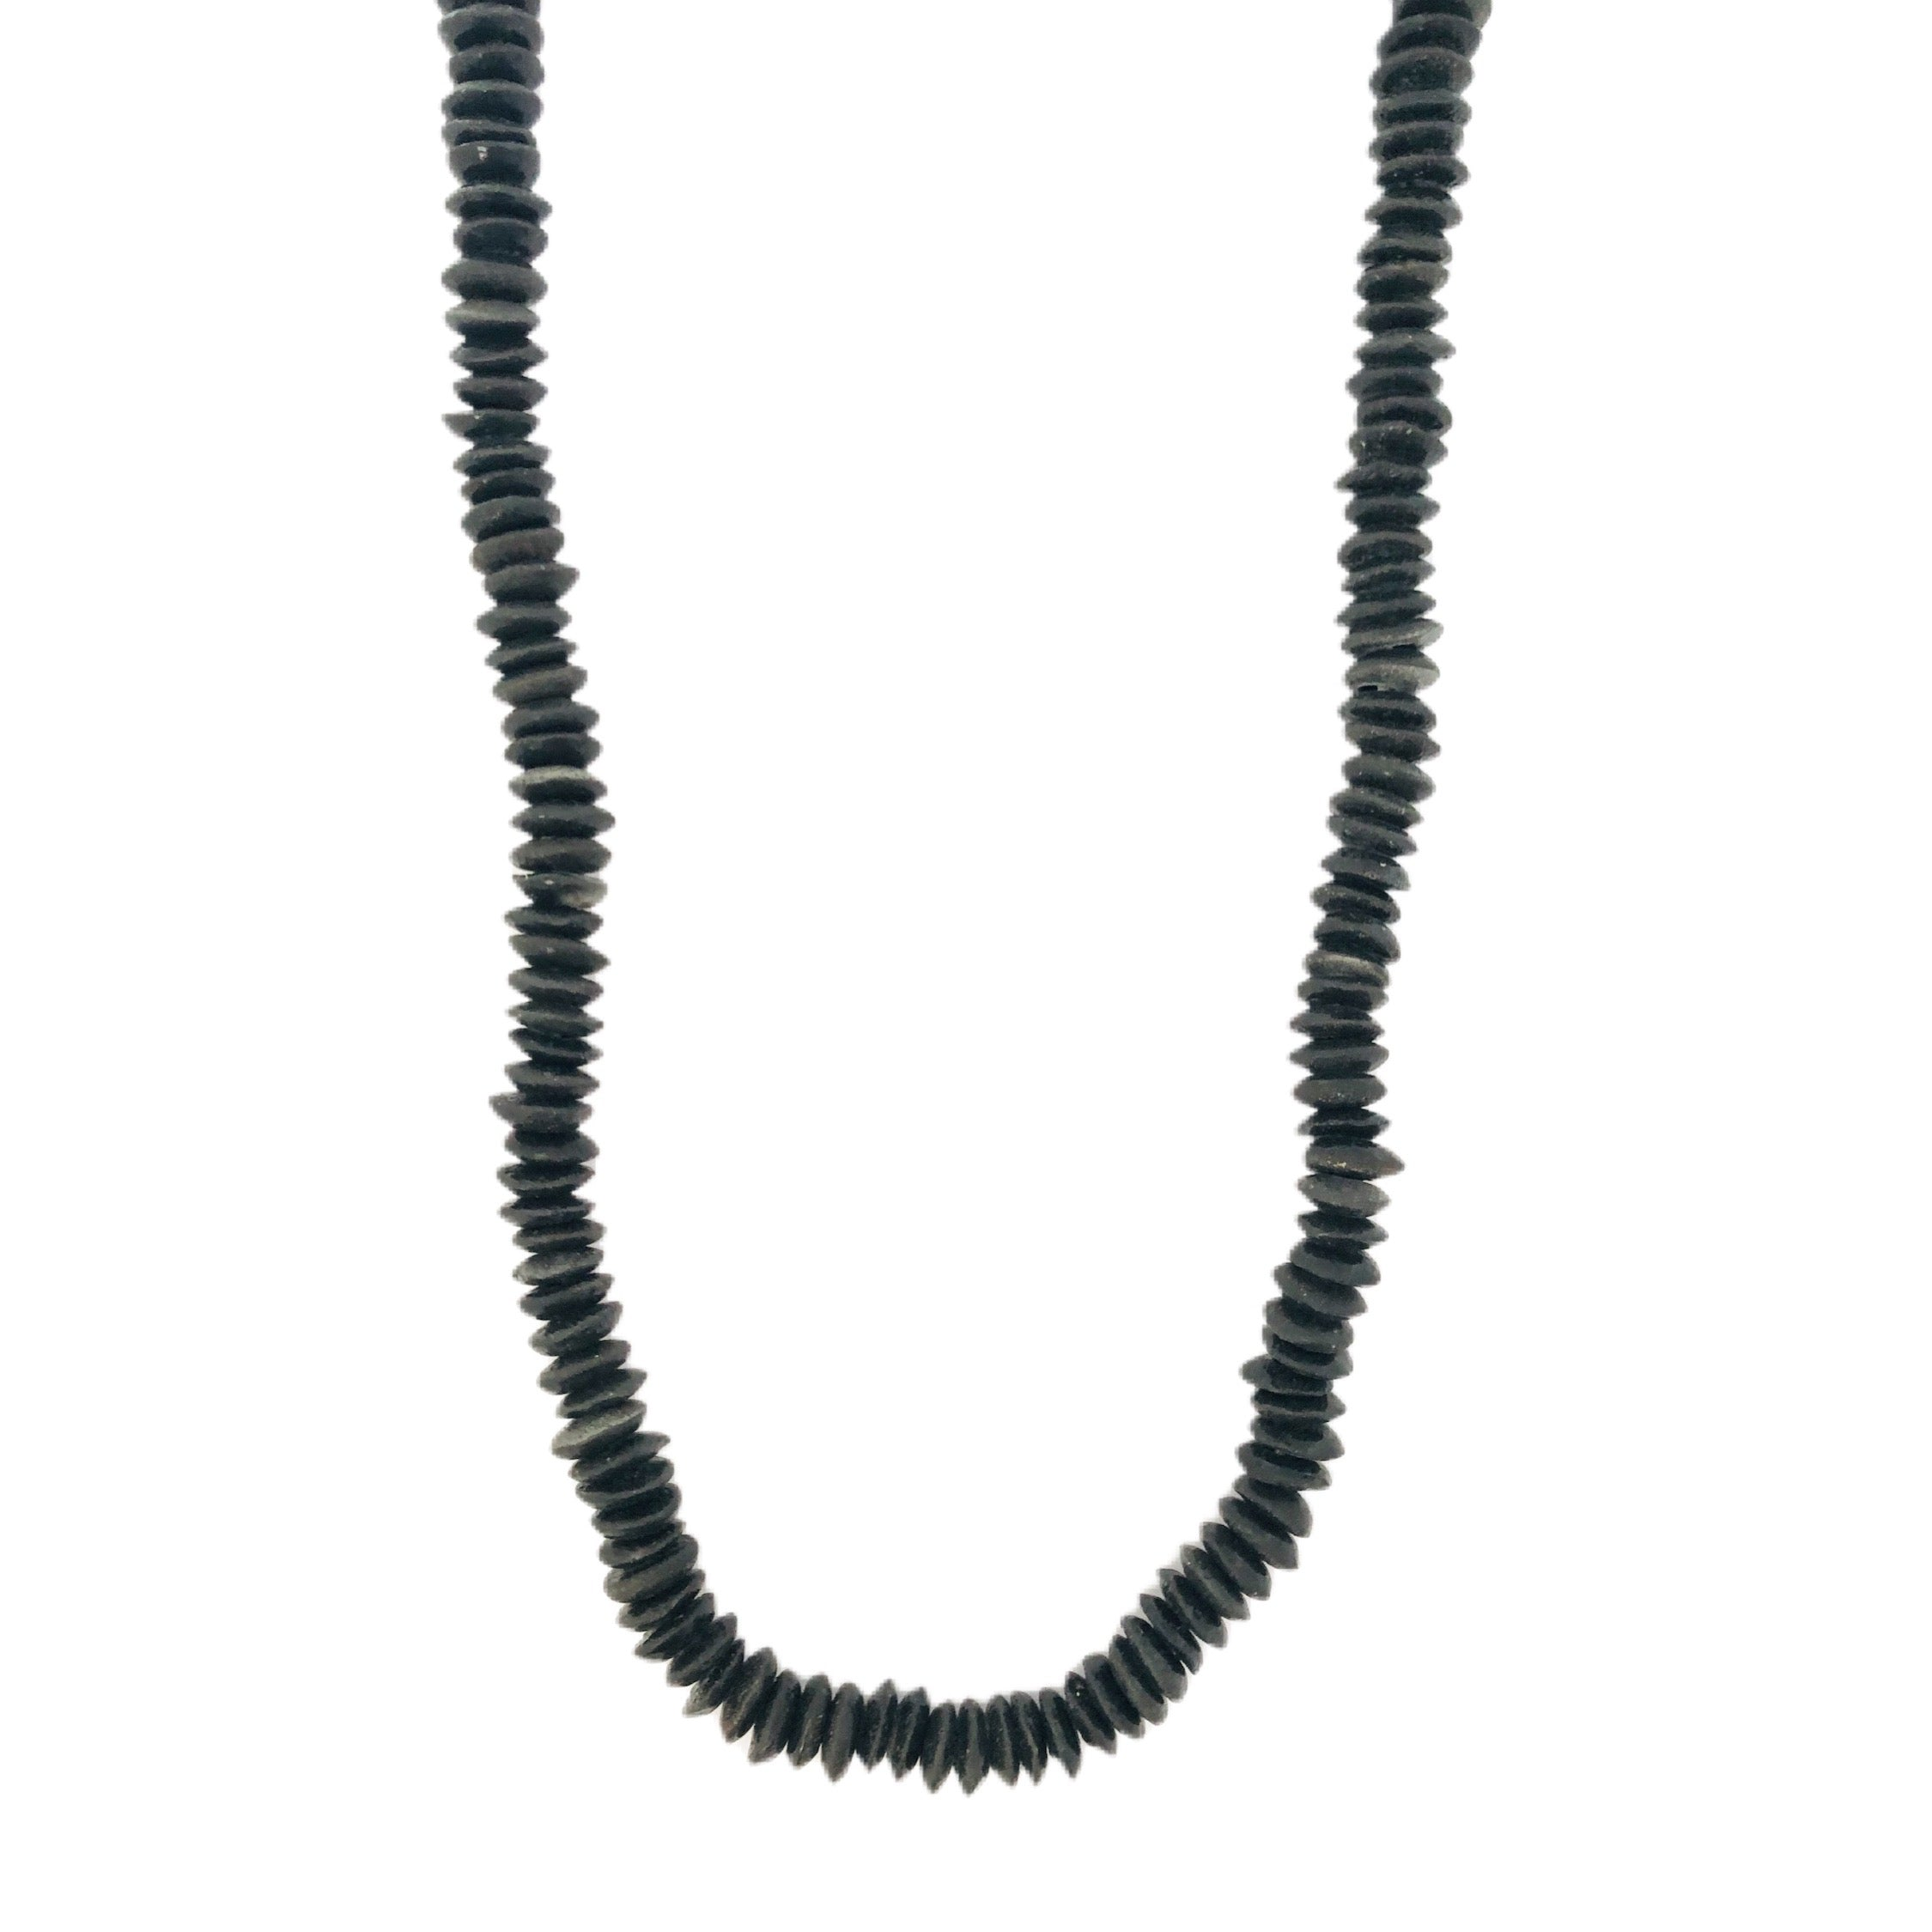 Long Black ATB Necklace